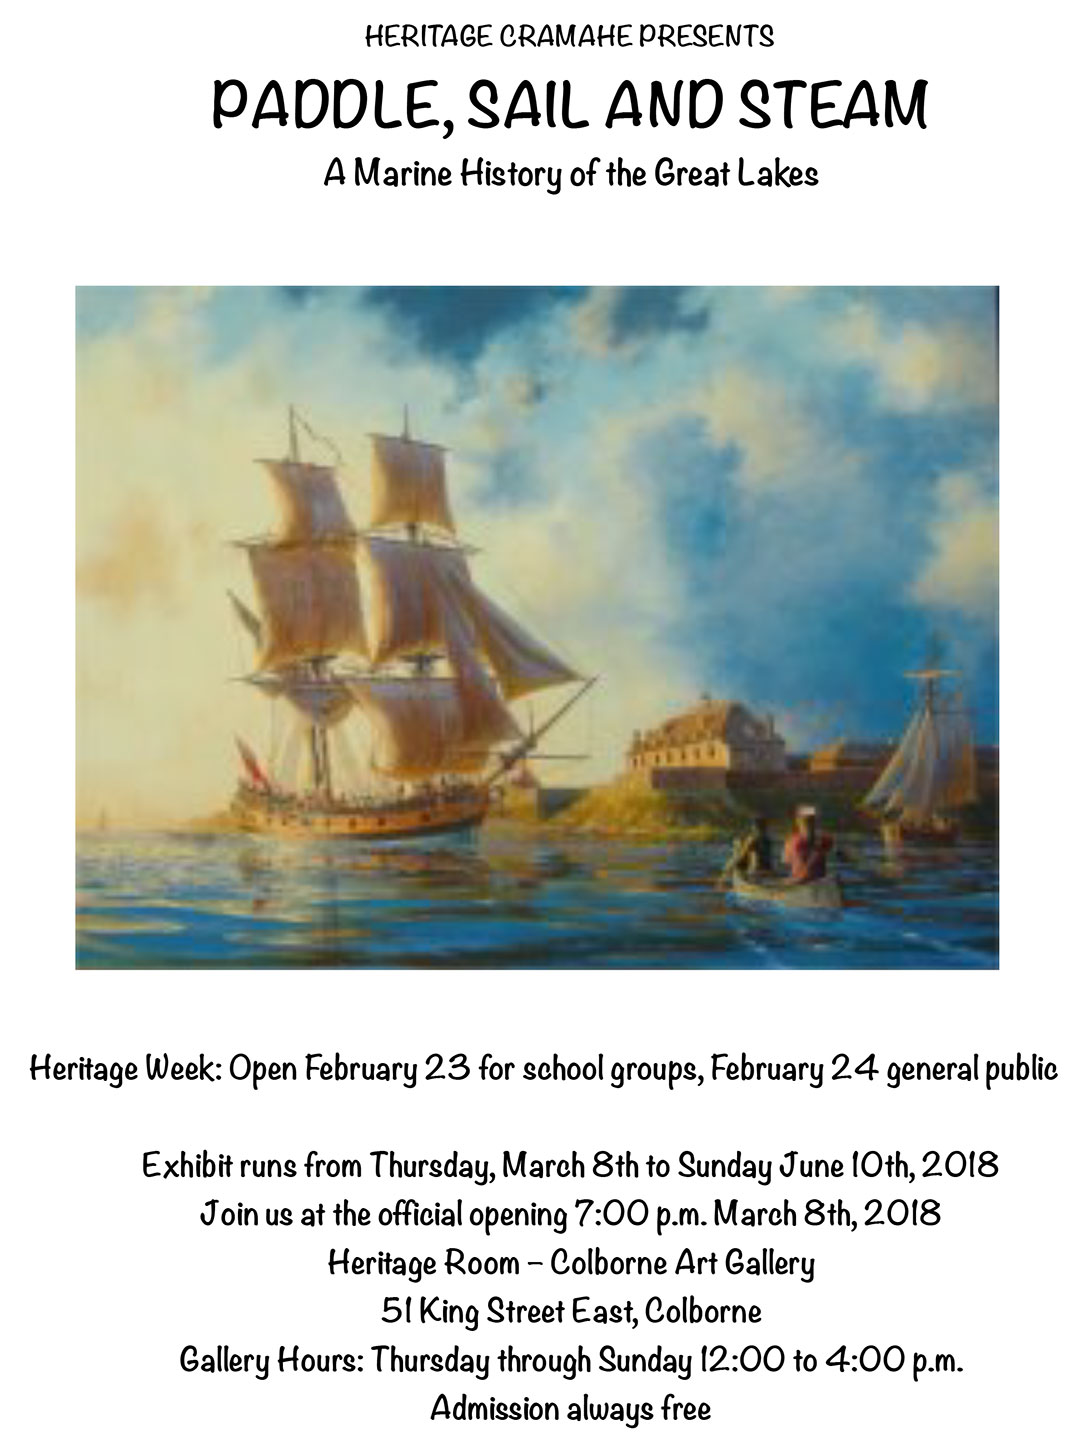 Heritage Cramahe Presents Paddle, Sail and Steam, A Marine History of the Great Lakes. Heritage Week. Open February 23 for school groups, February 24 general public. Exhibit runs from Thursday, March 8th to Sunday June 10th, 2018. Join us at the official opening 7:00 p.m. March 8th, 2018